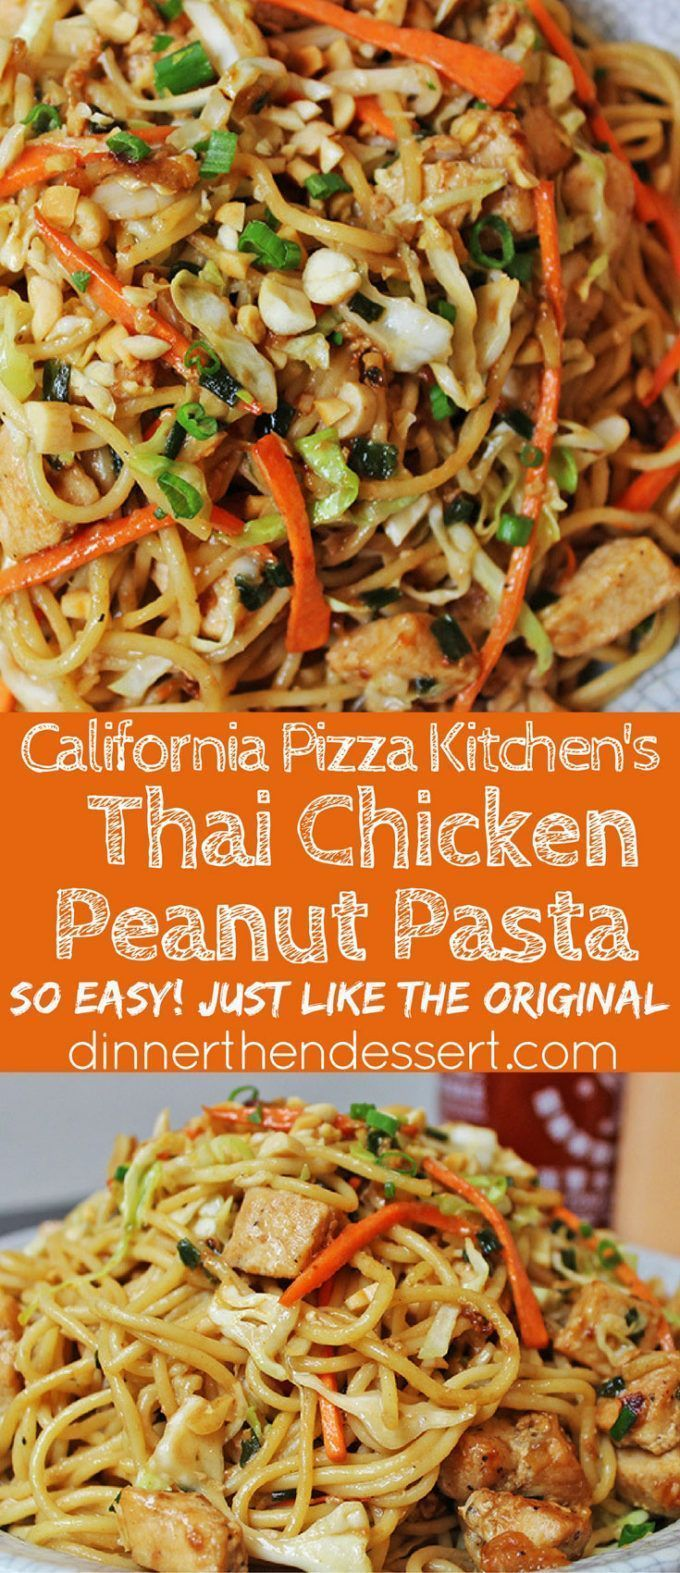 Thai Peanut Chicken Pasta made with chicken, vegetables, and a honey-peanut sauce, this California Pizza Kitchen dish is easy to make at home.